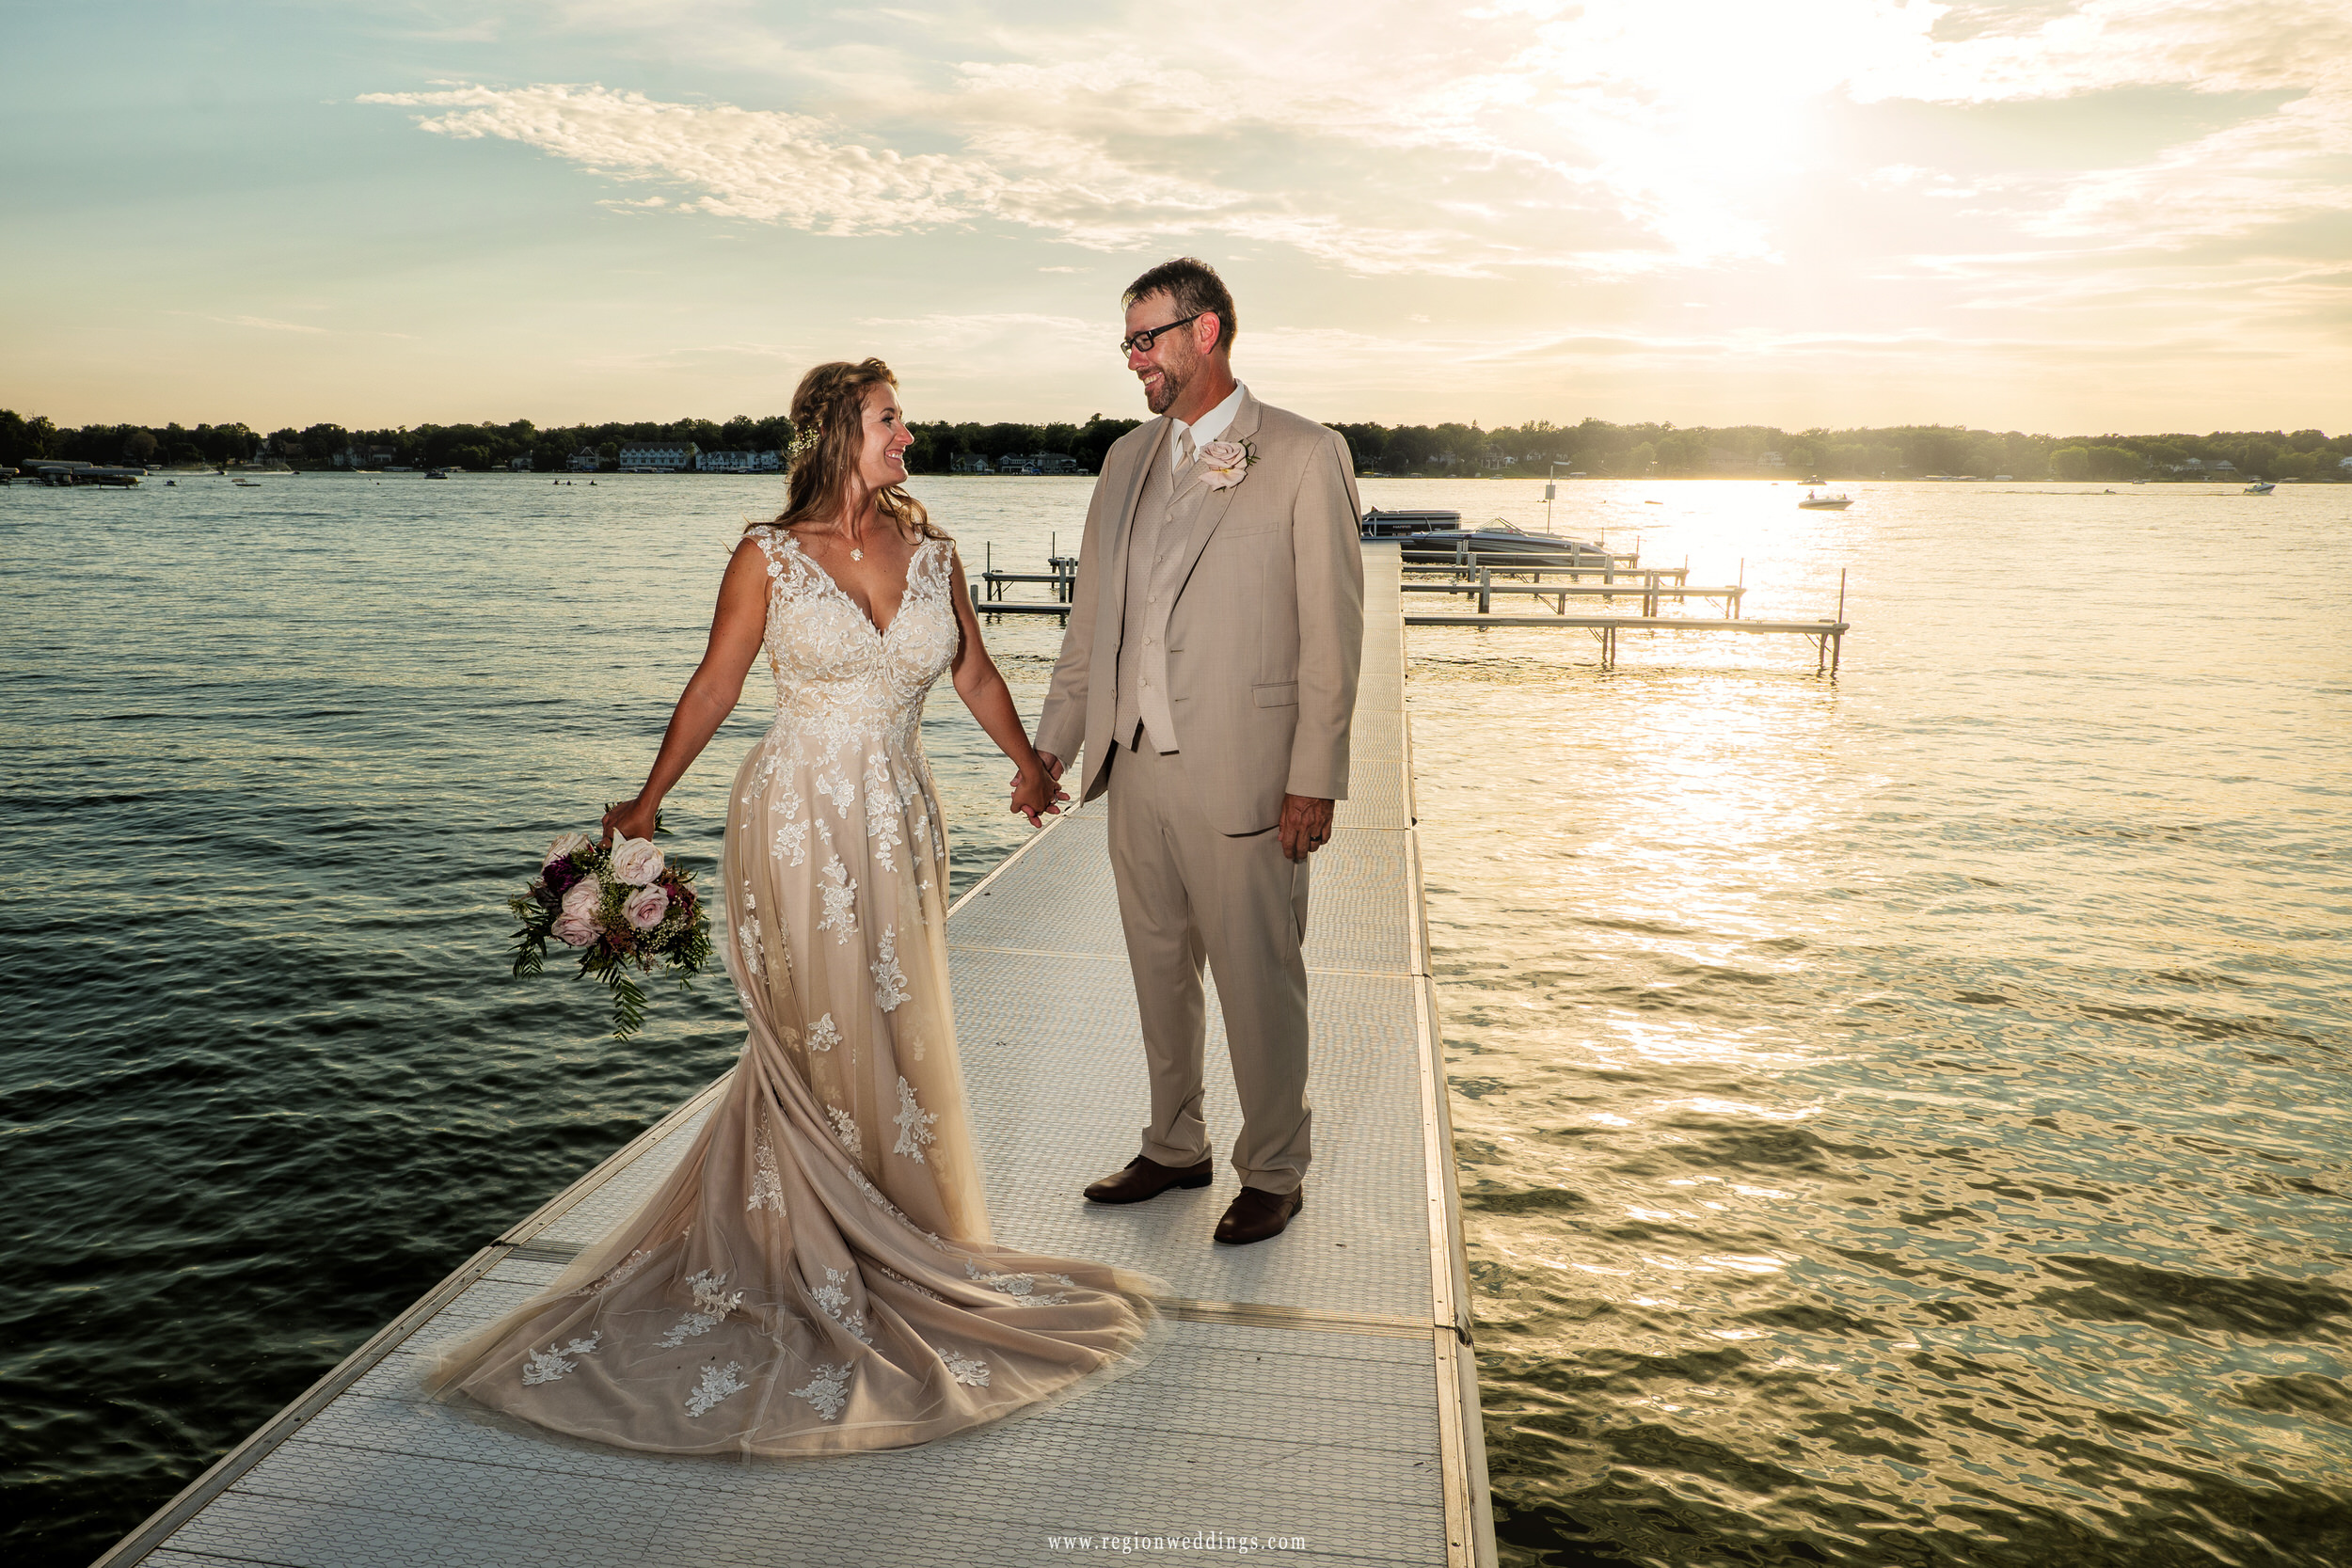 The bride twist toward her groom as the sun shines over the lake.